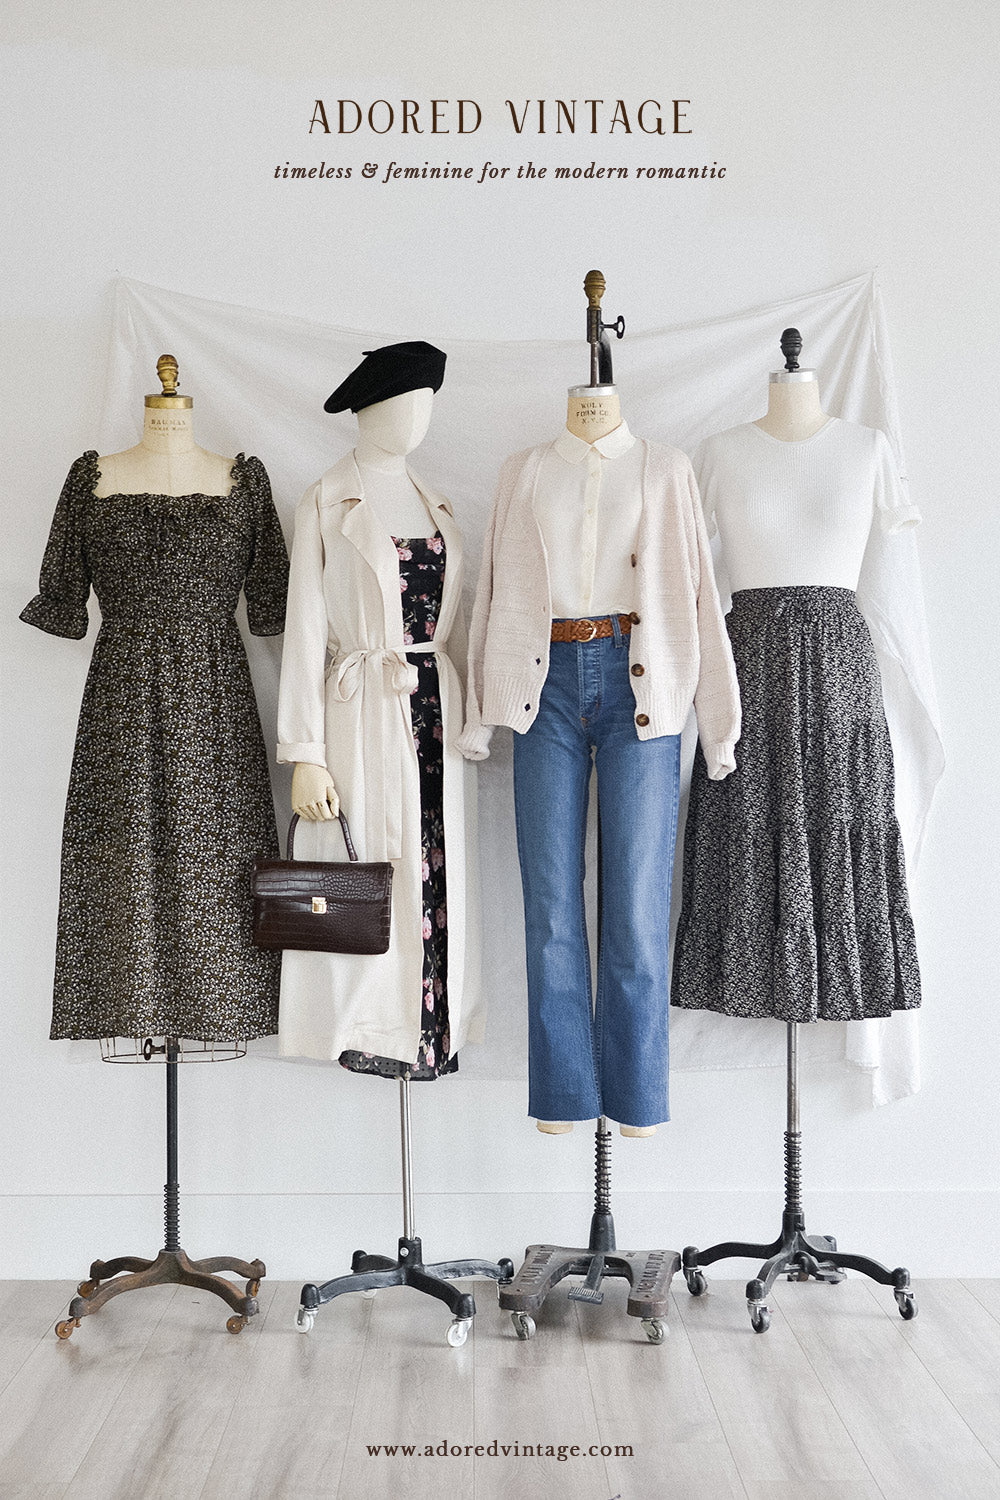 Vintage French Girl Inspired Outfits - Adored Vintage Women's Clothing Store